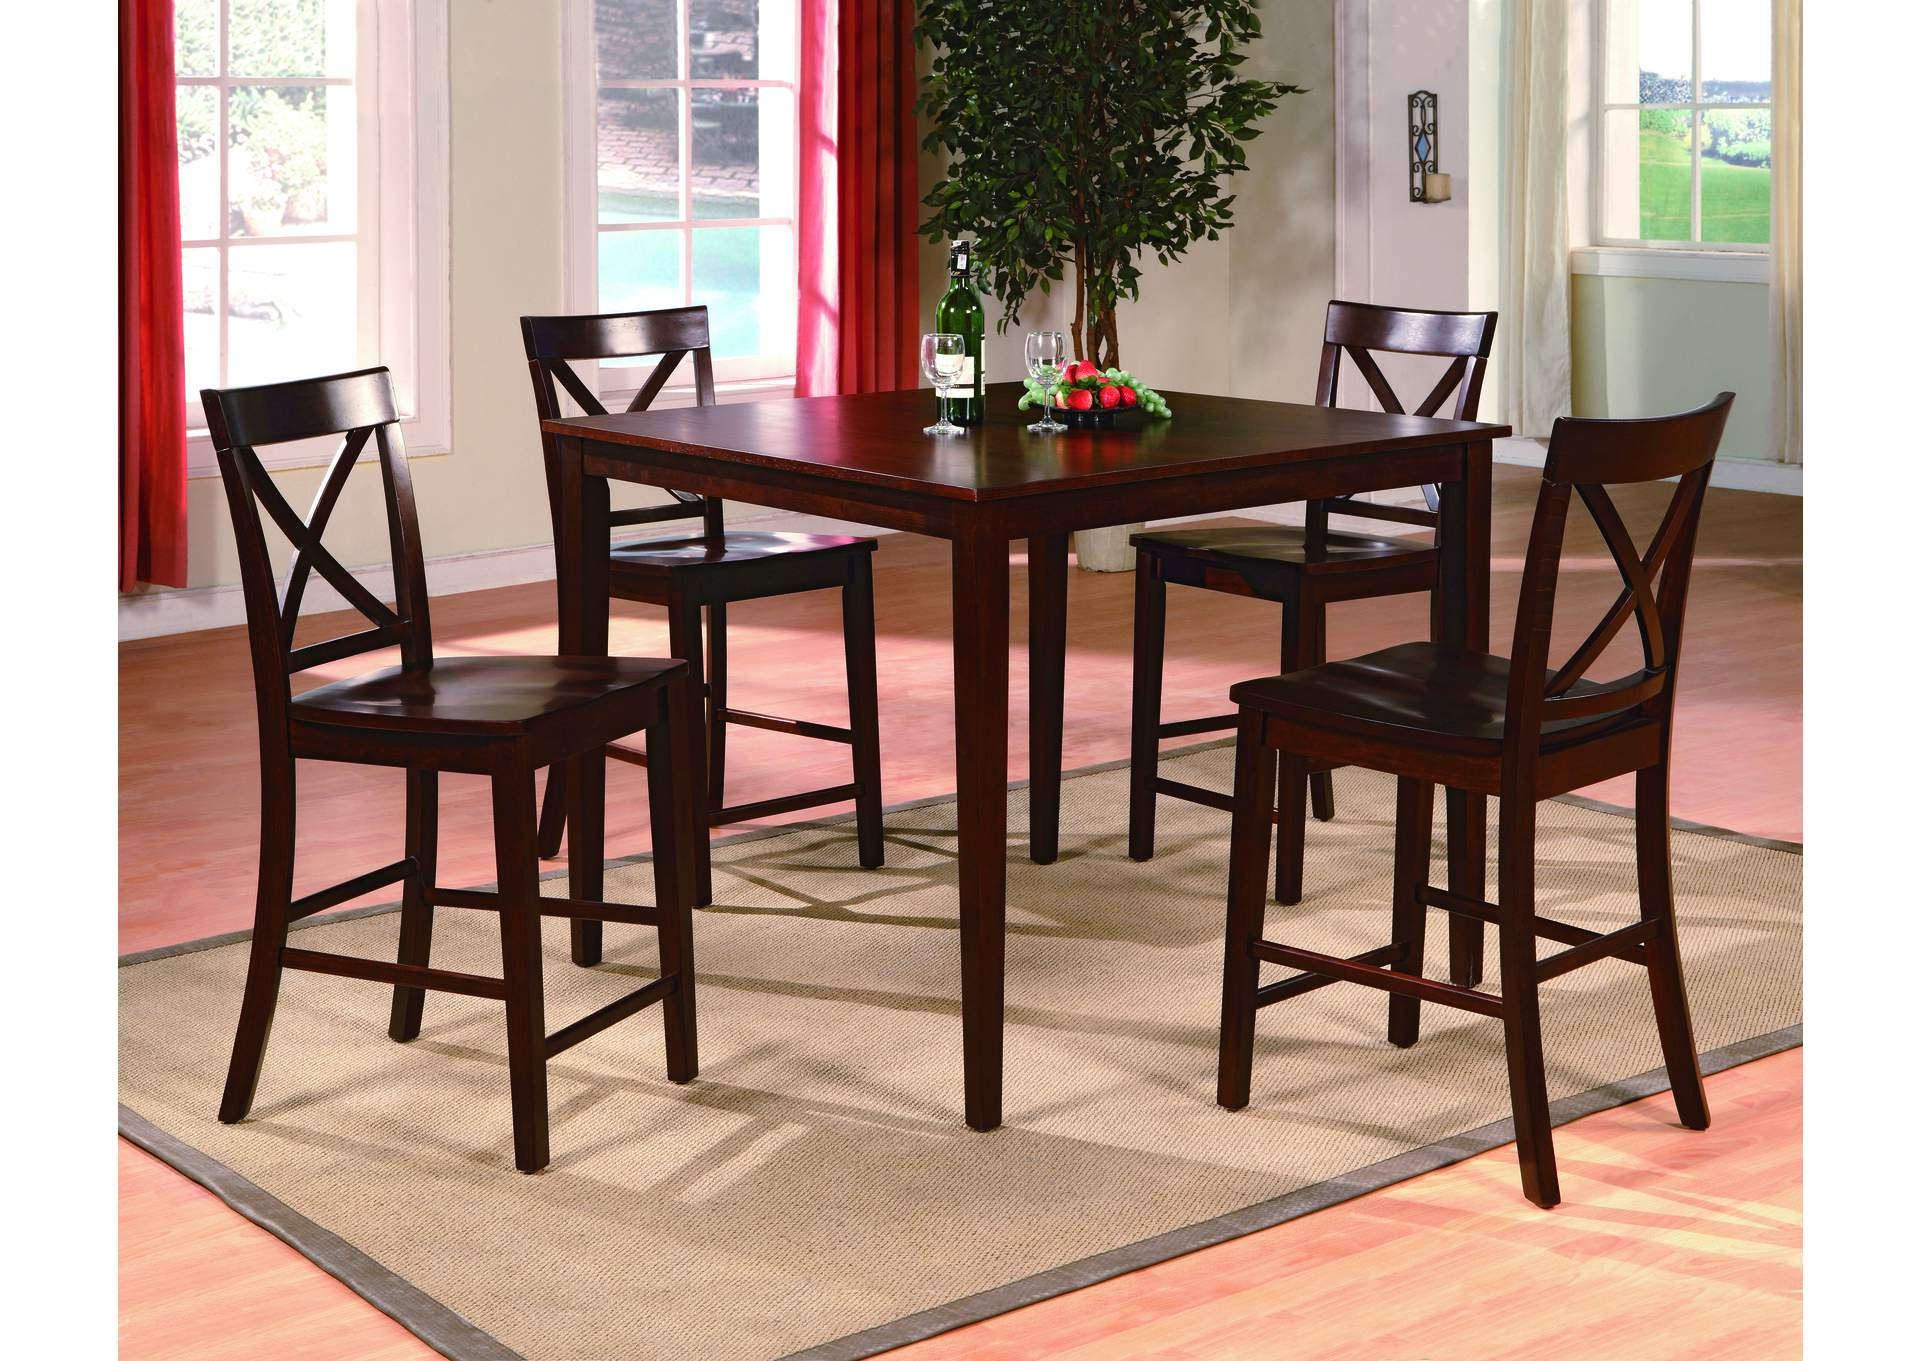 Theodore 5 Piece Set Counter Height Dining Table Set,Crown Mark